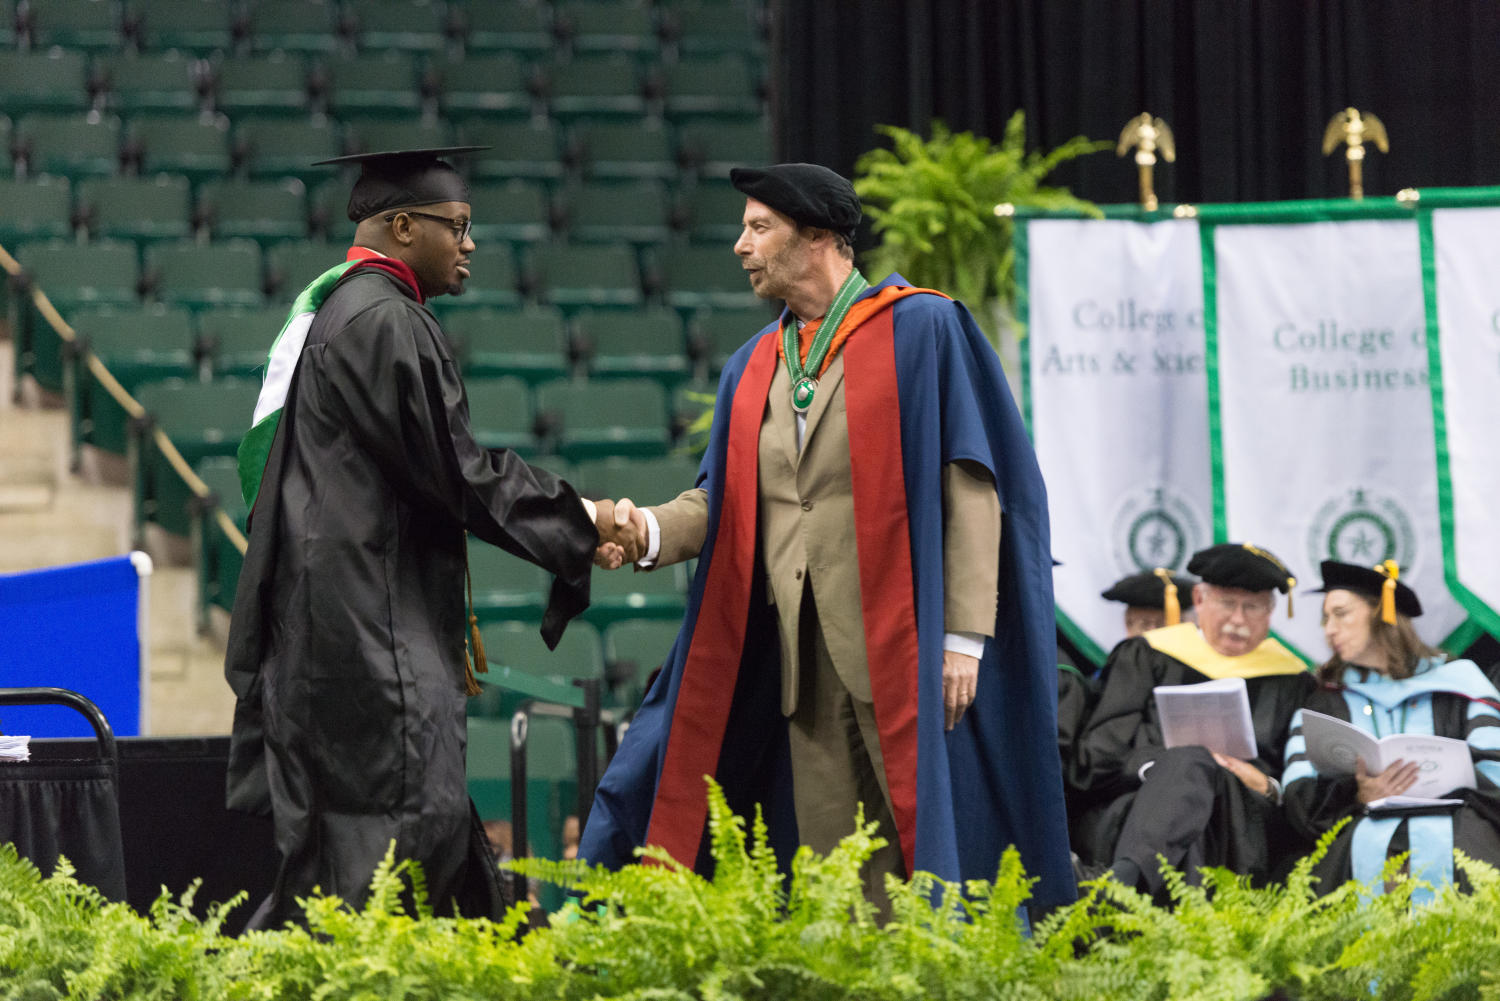 Male Graduate Student Shaking Hands with Dean] - Digital Library